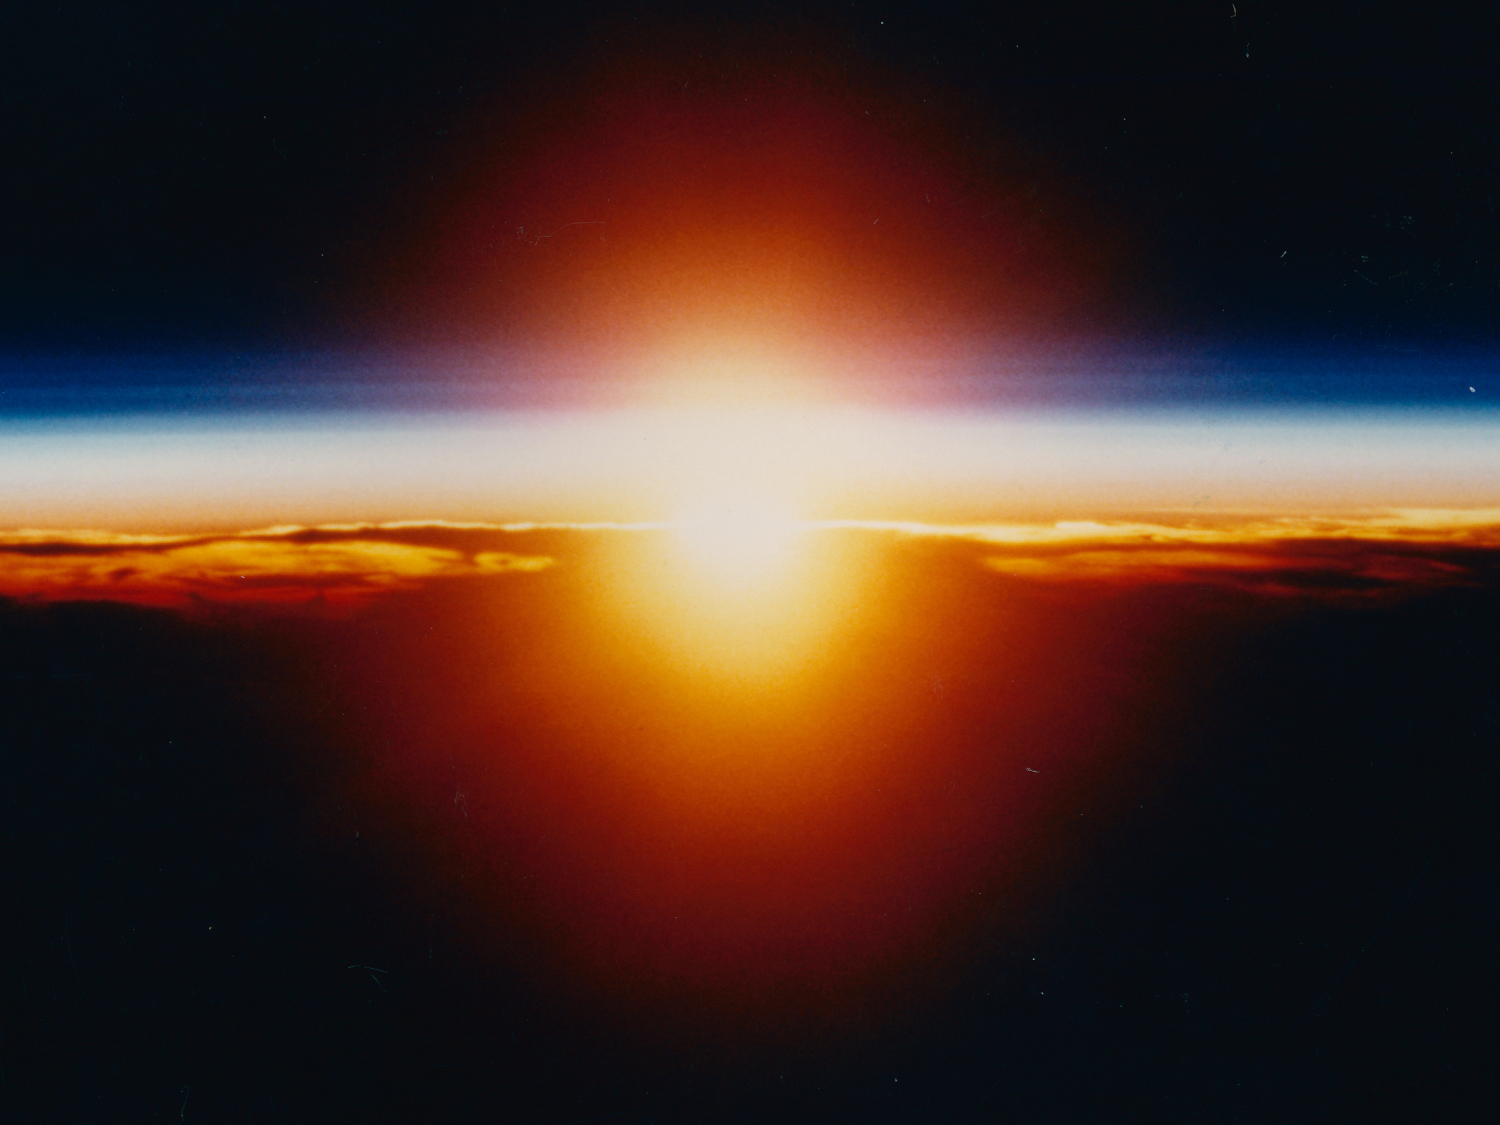 Sunrise from orbit.